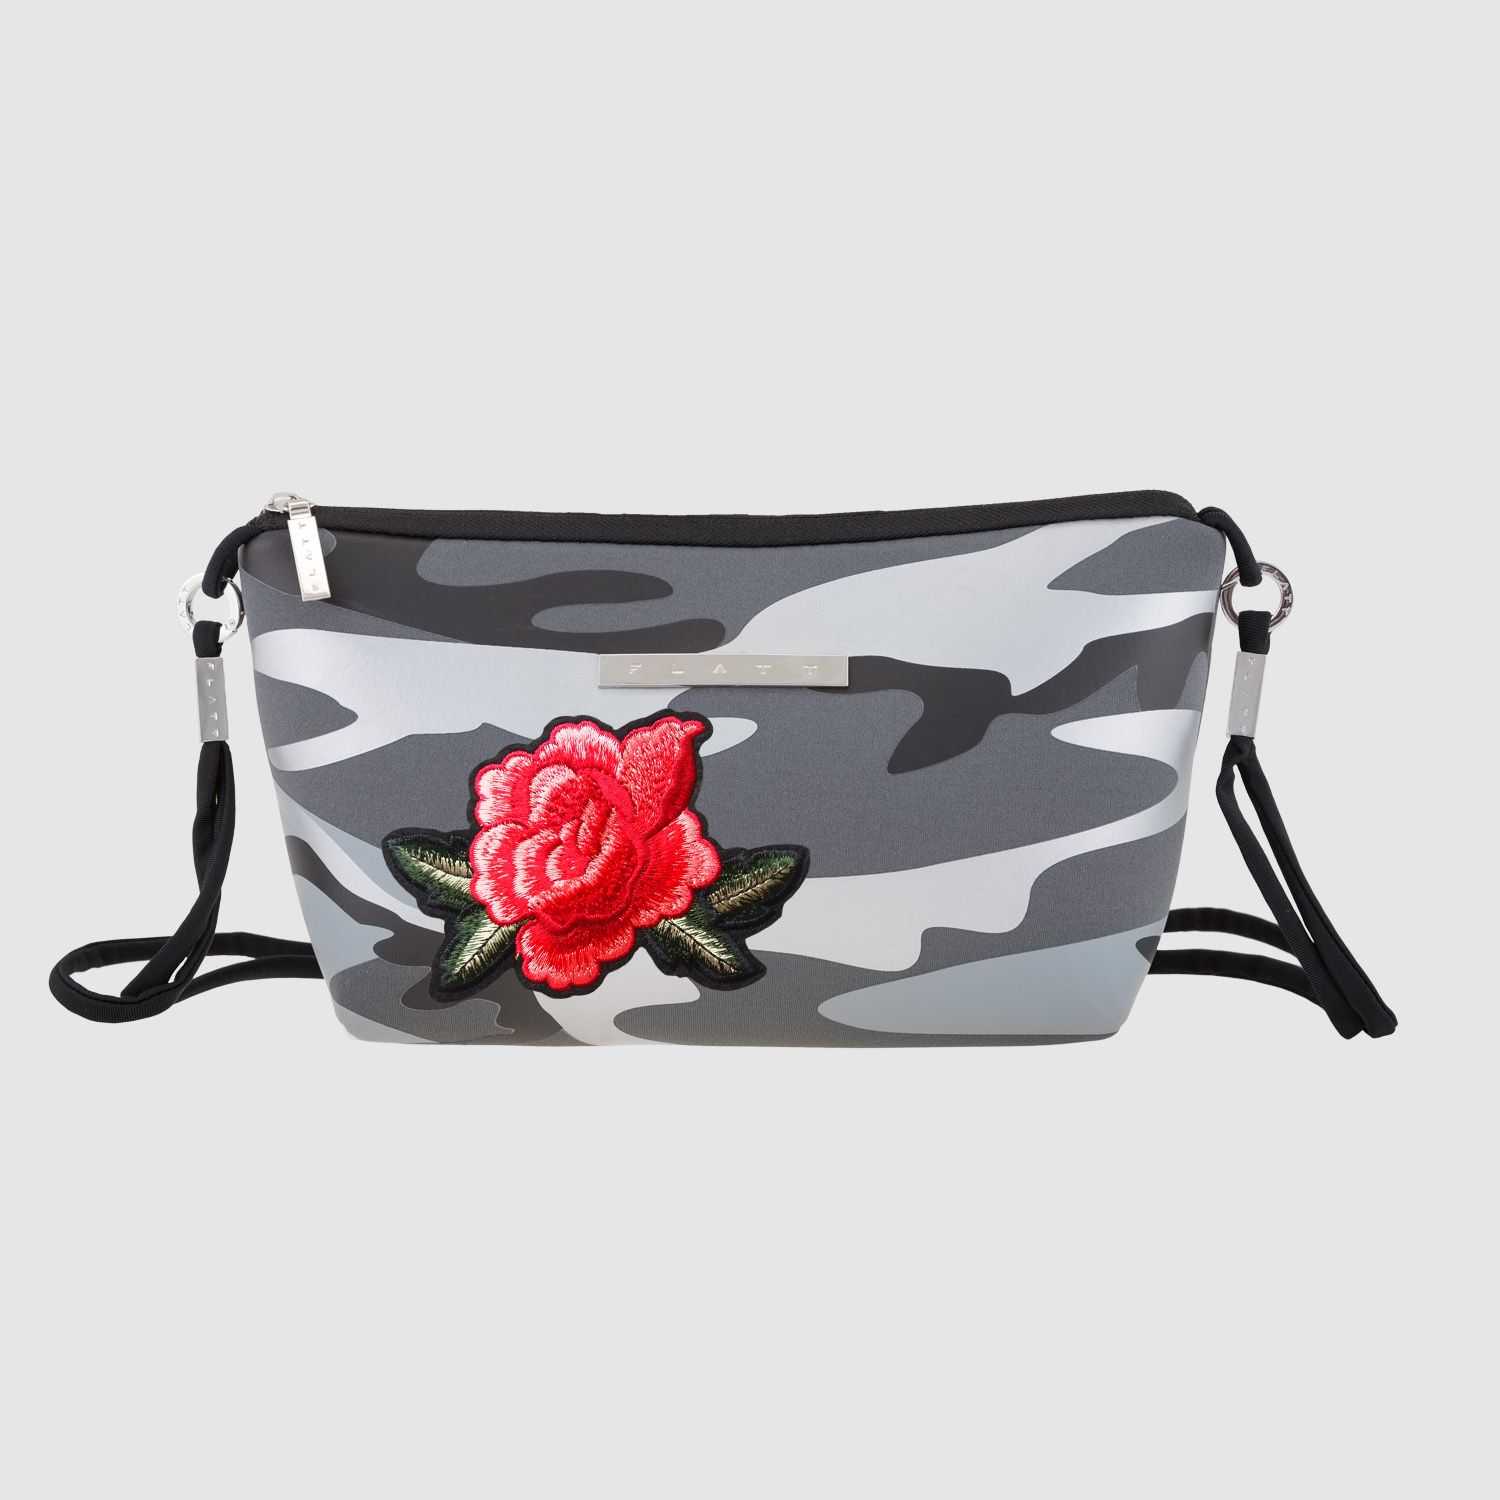 2a13cc0c5b25 Crossbody bag CAMOUFLAGE WITH ROSE Silver - F L A T T